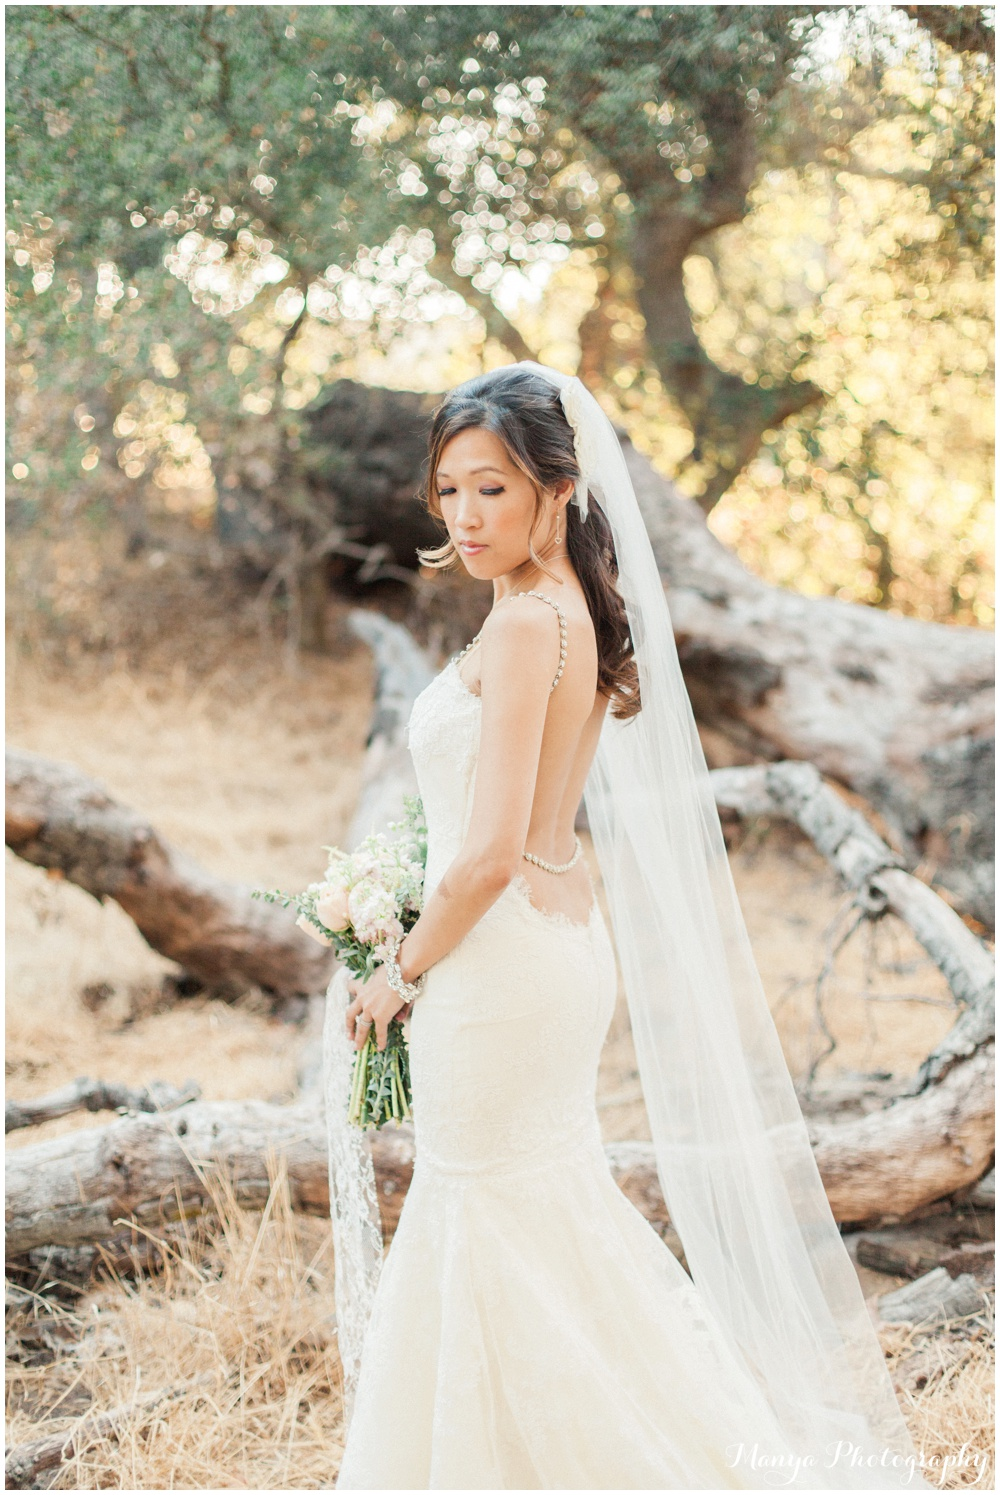 MandM_Wedding_Orange_County_Wedding_Photographer_Manya_Photography_Carbon_Thomas_F_Riley_Wilderness_Park__0024